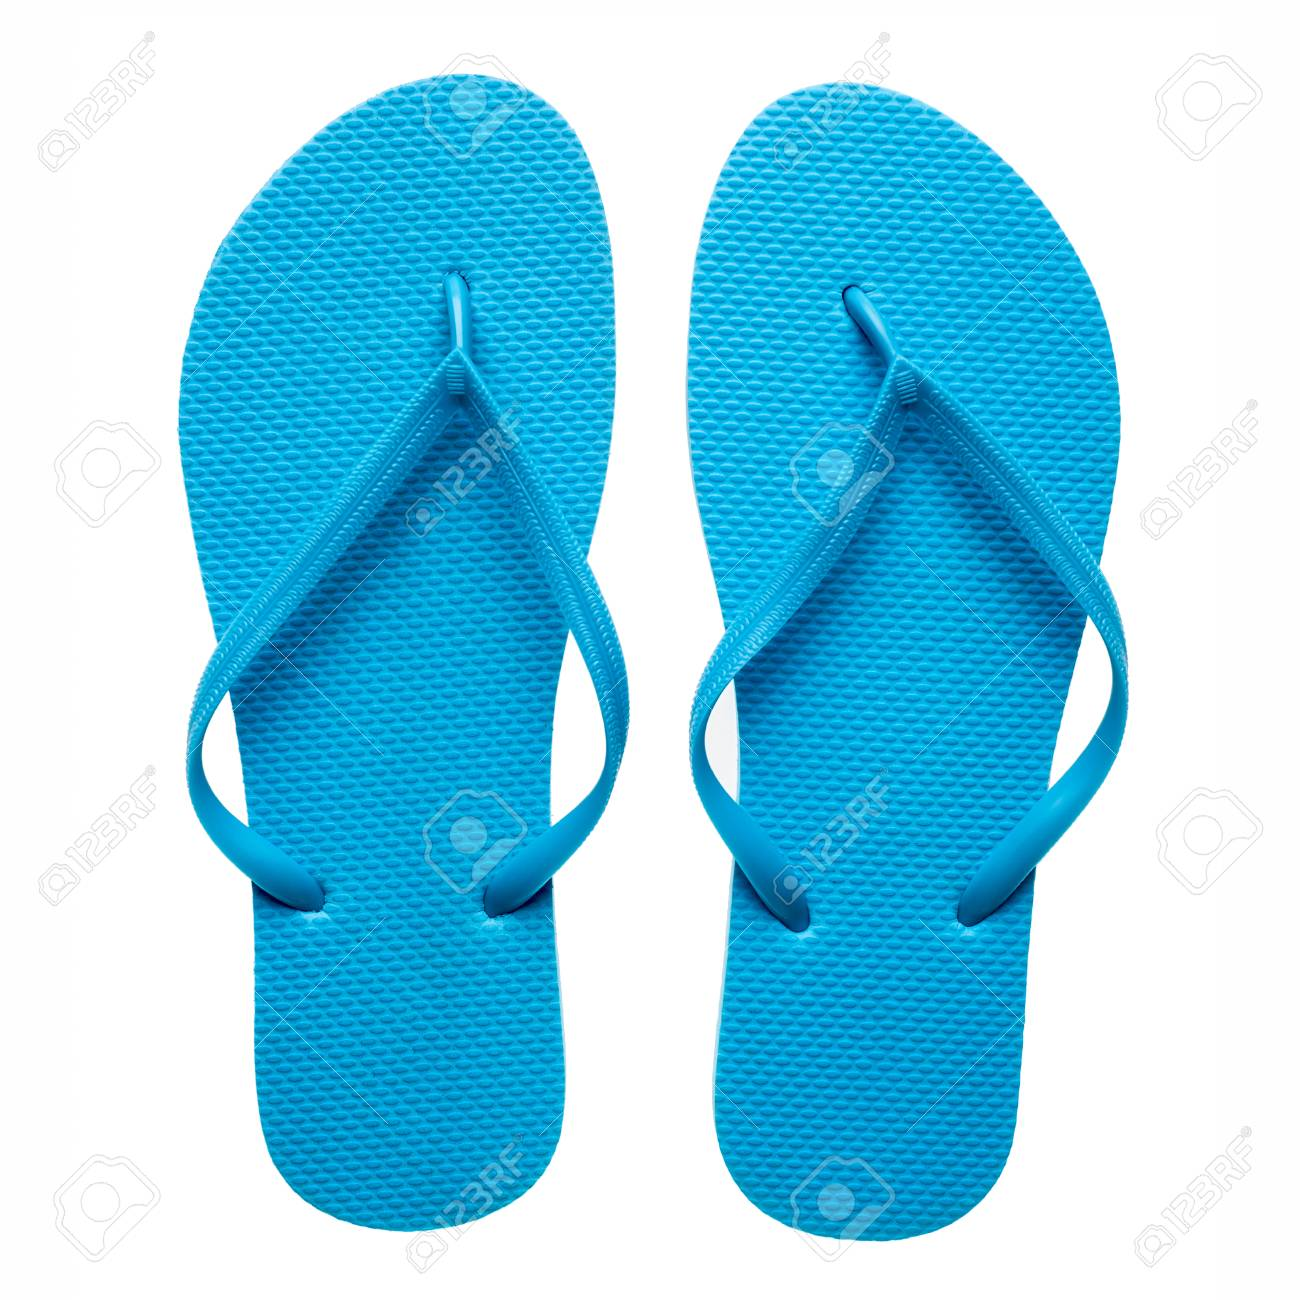 7671e6f5feb9 Pair of blue flip-flops isolated on a white background. Stock Photo -  40876160